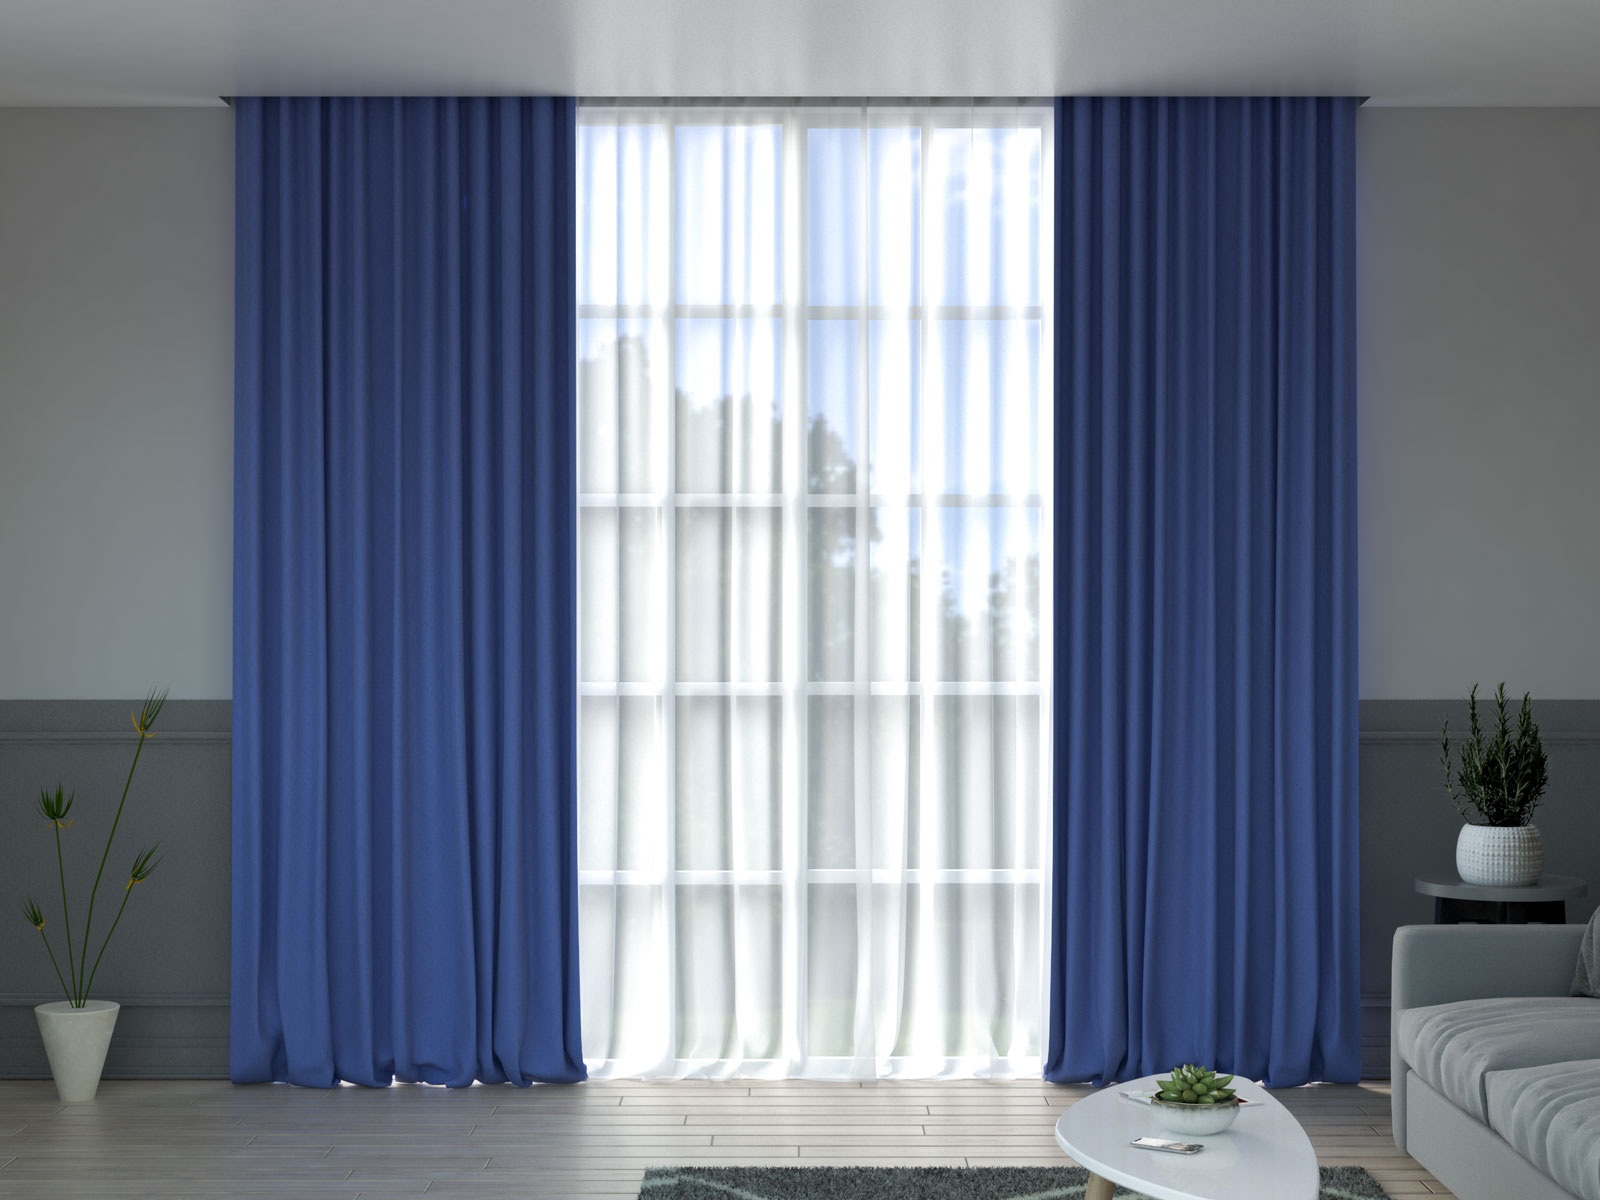 Cobalt blue curtains with gray wall